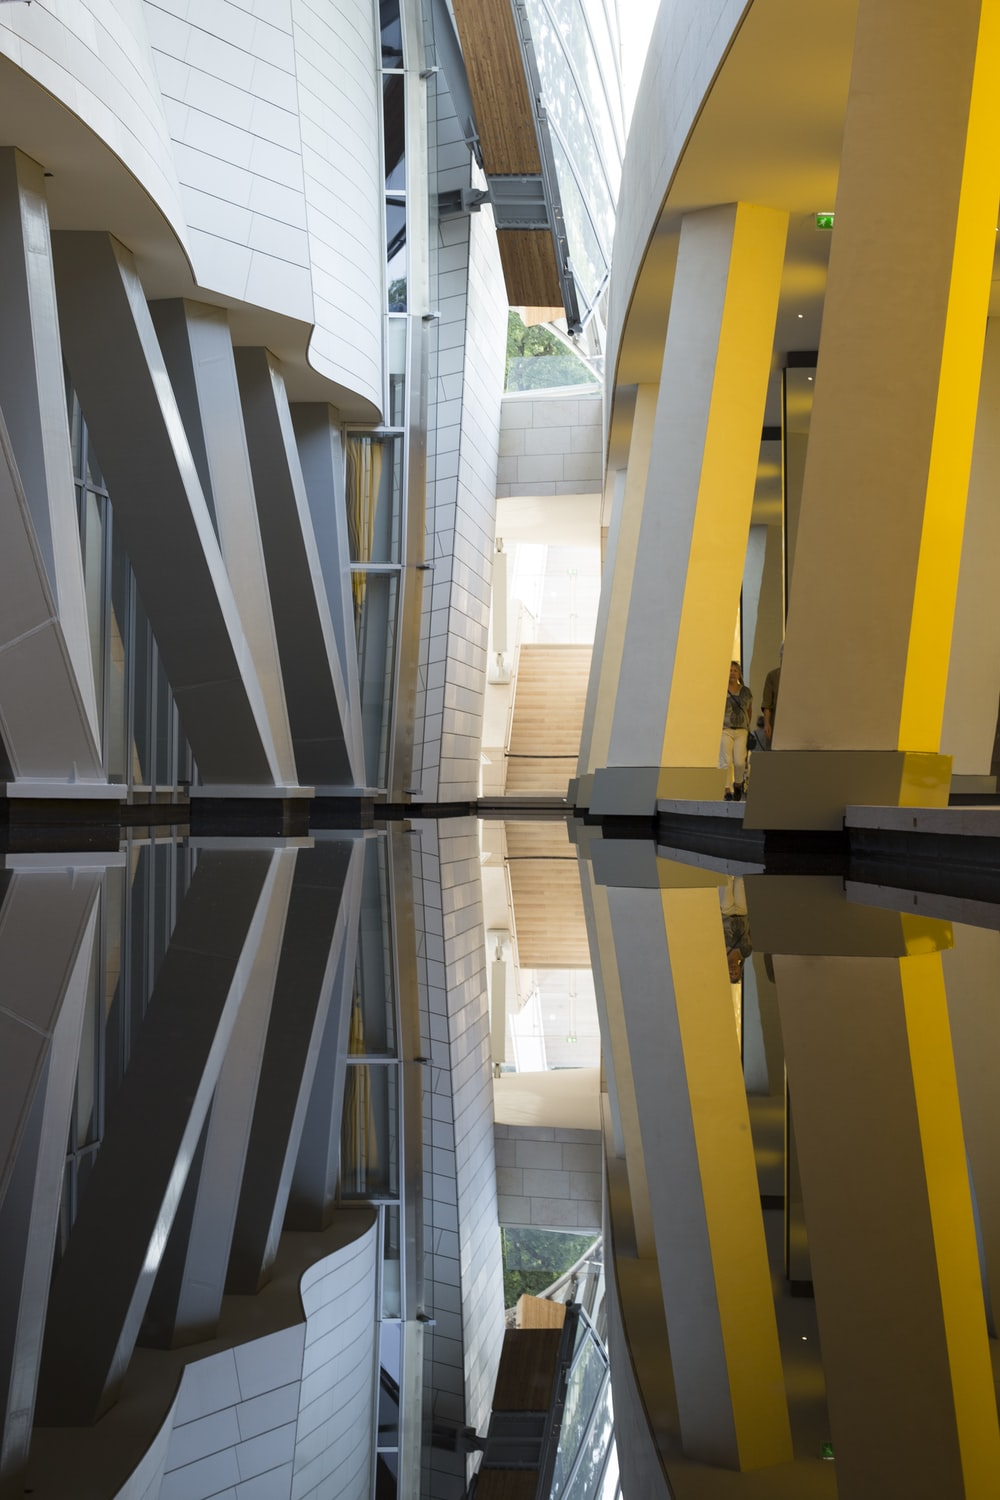 reflection of yellow and white building on water during daytime